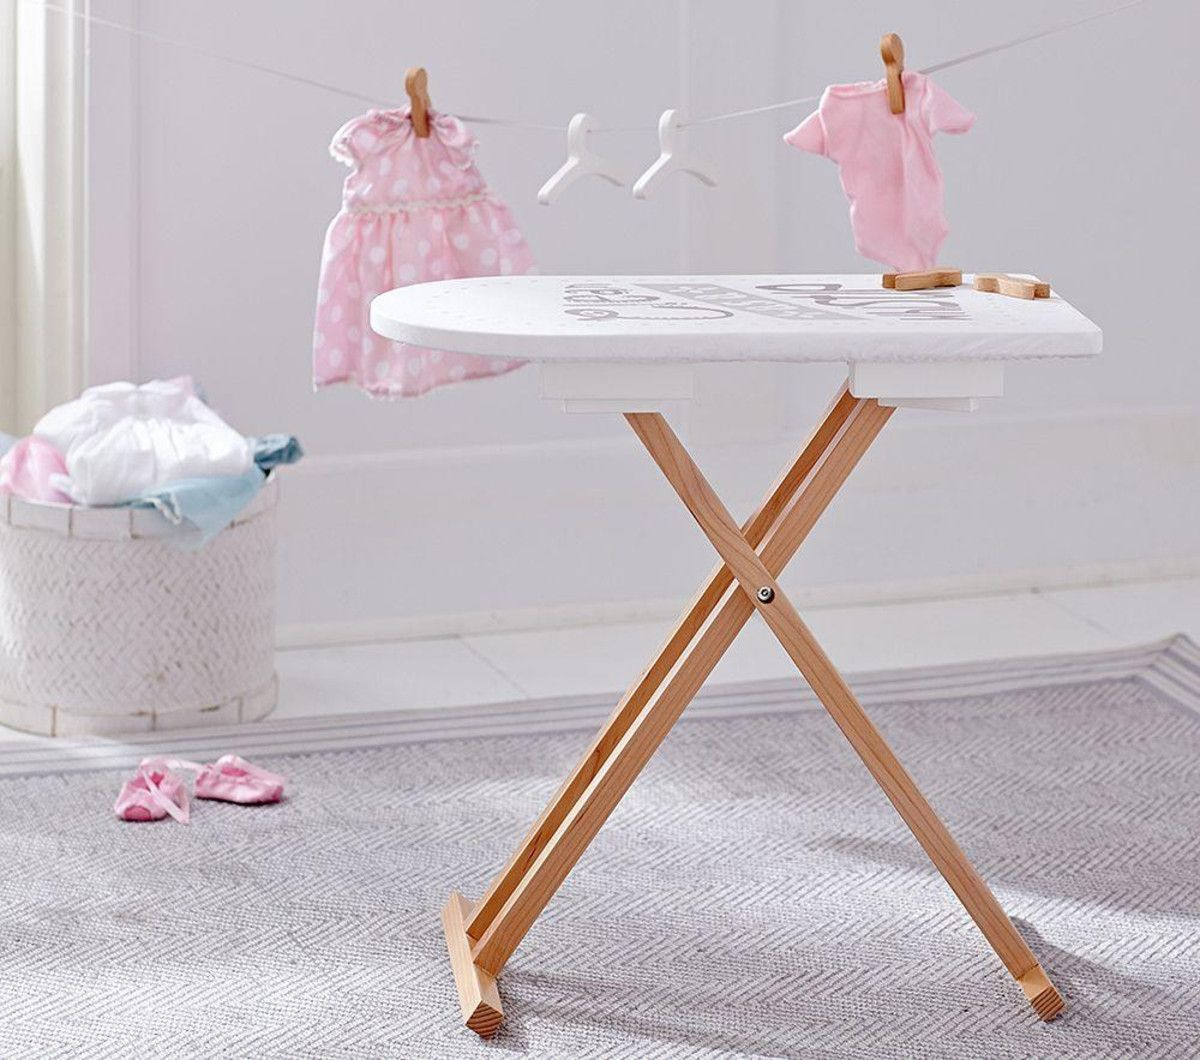 clean as a whistle ironing board | baby eva | iron board